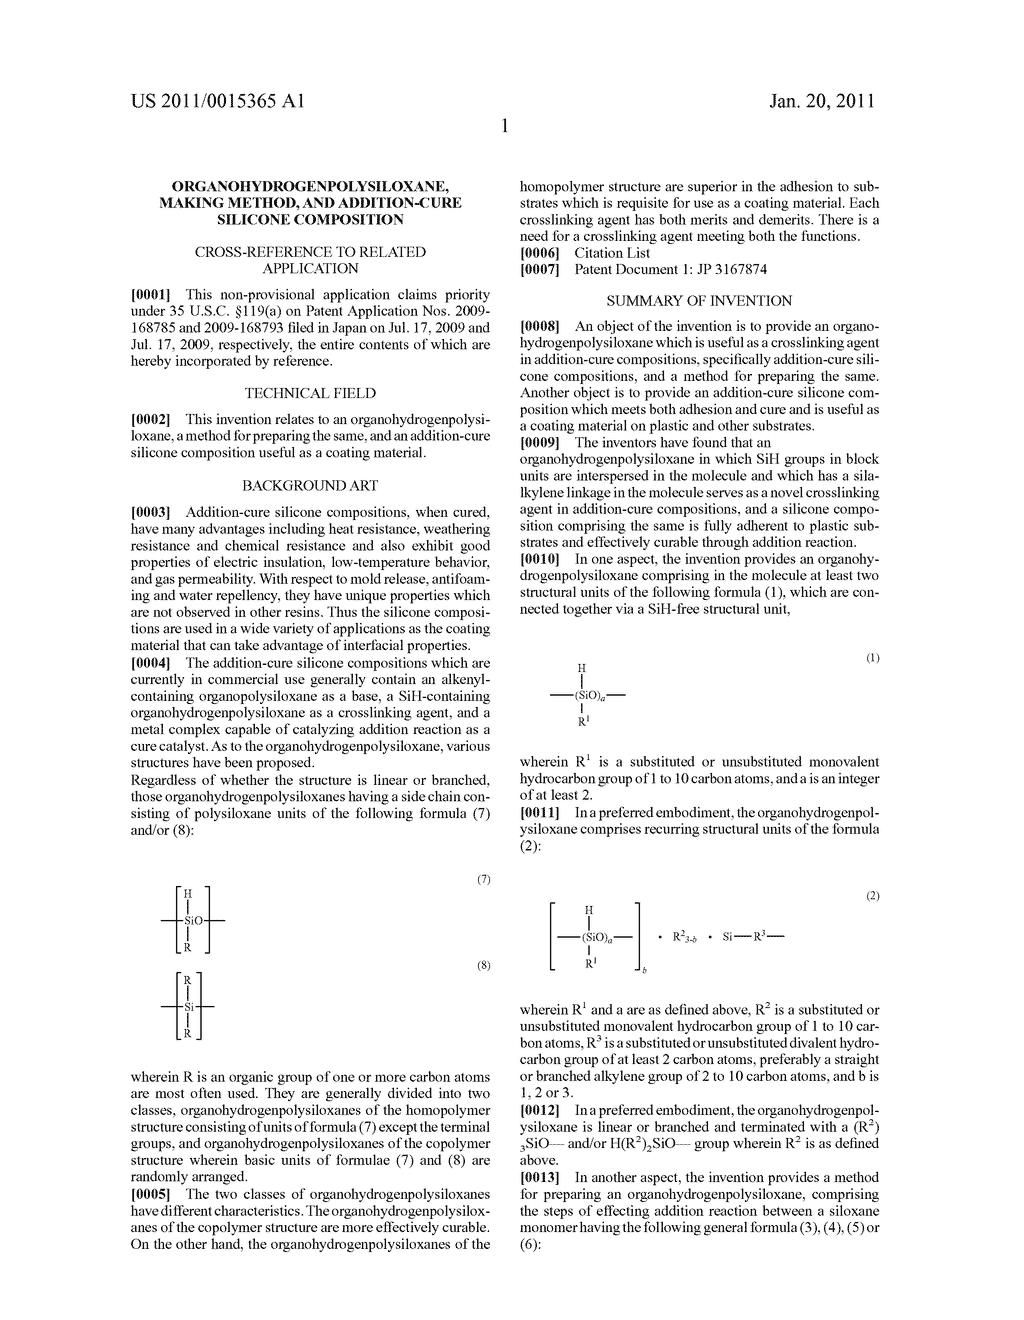 ORGANOHYDROGENPOLYSILOXANE, MAKING METHOD, AND ADDITION-CURE SILICONE COMPOSITION - diagram, schematic, and image 02